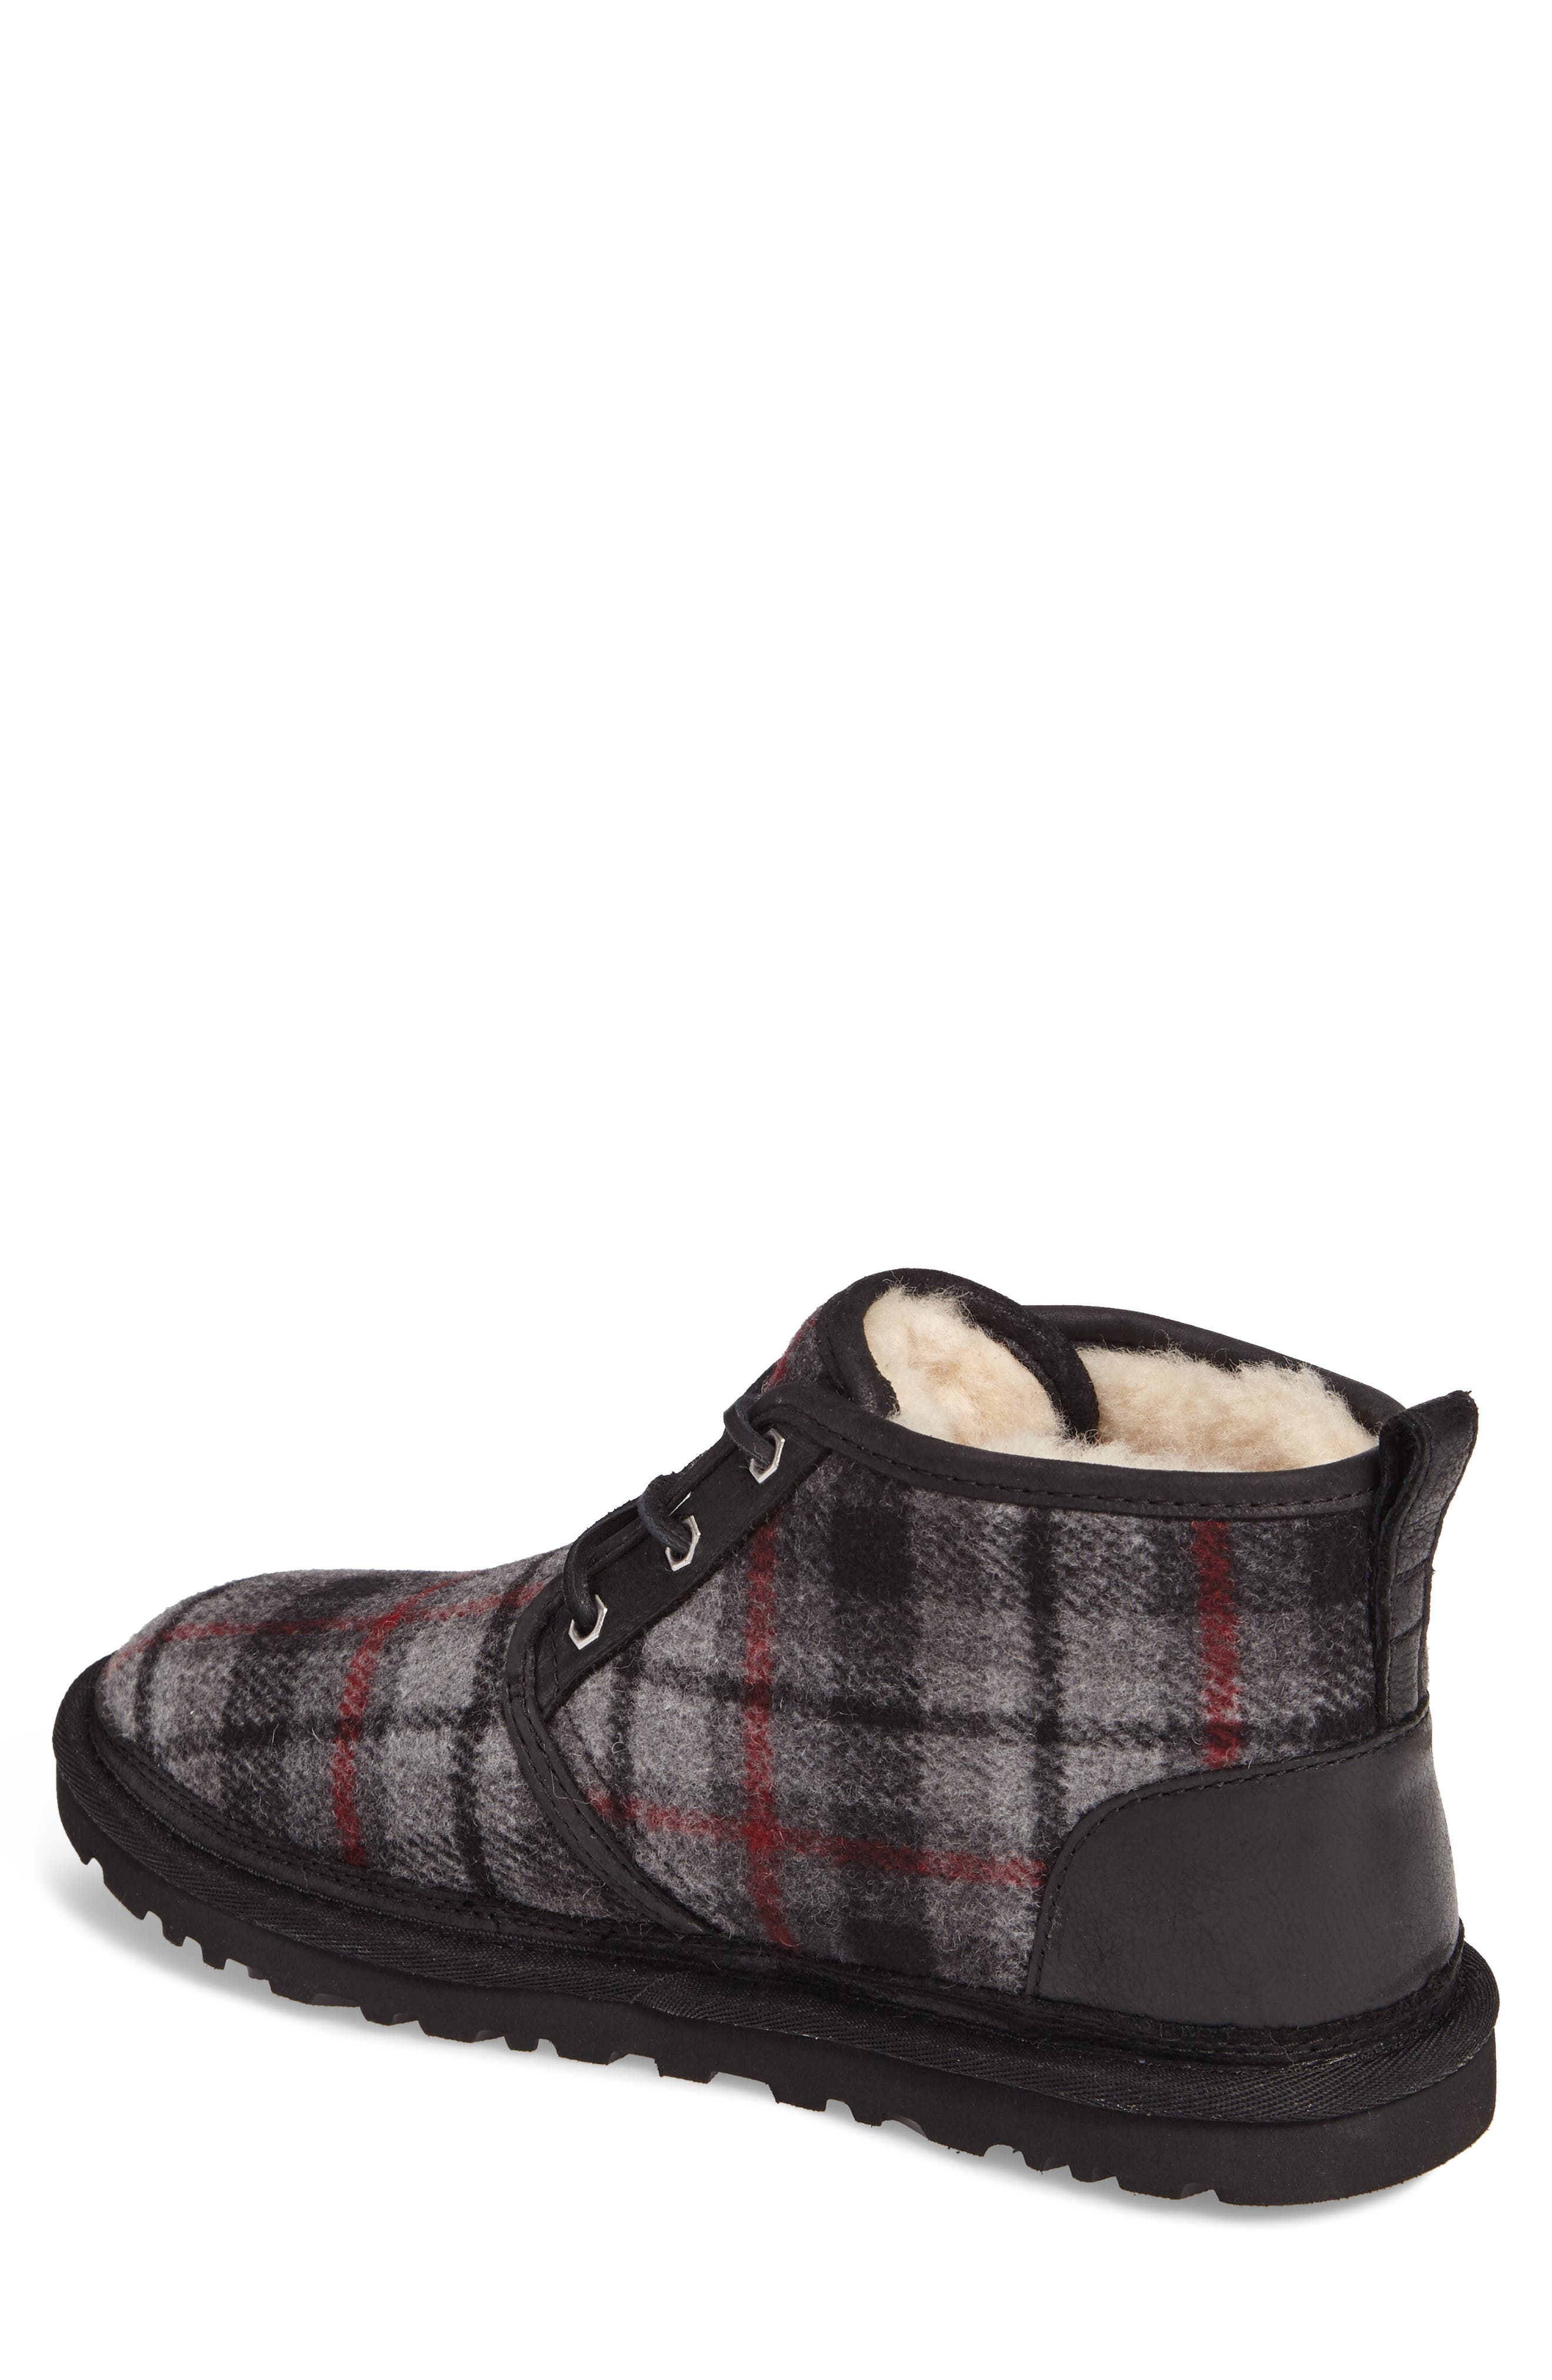 Neumel Chukka Boot,                             Alternate thumbnail 2, color,                             Tartan Plaid